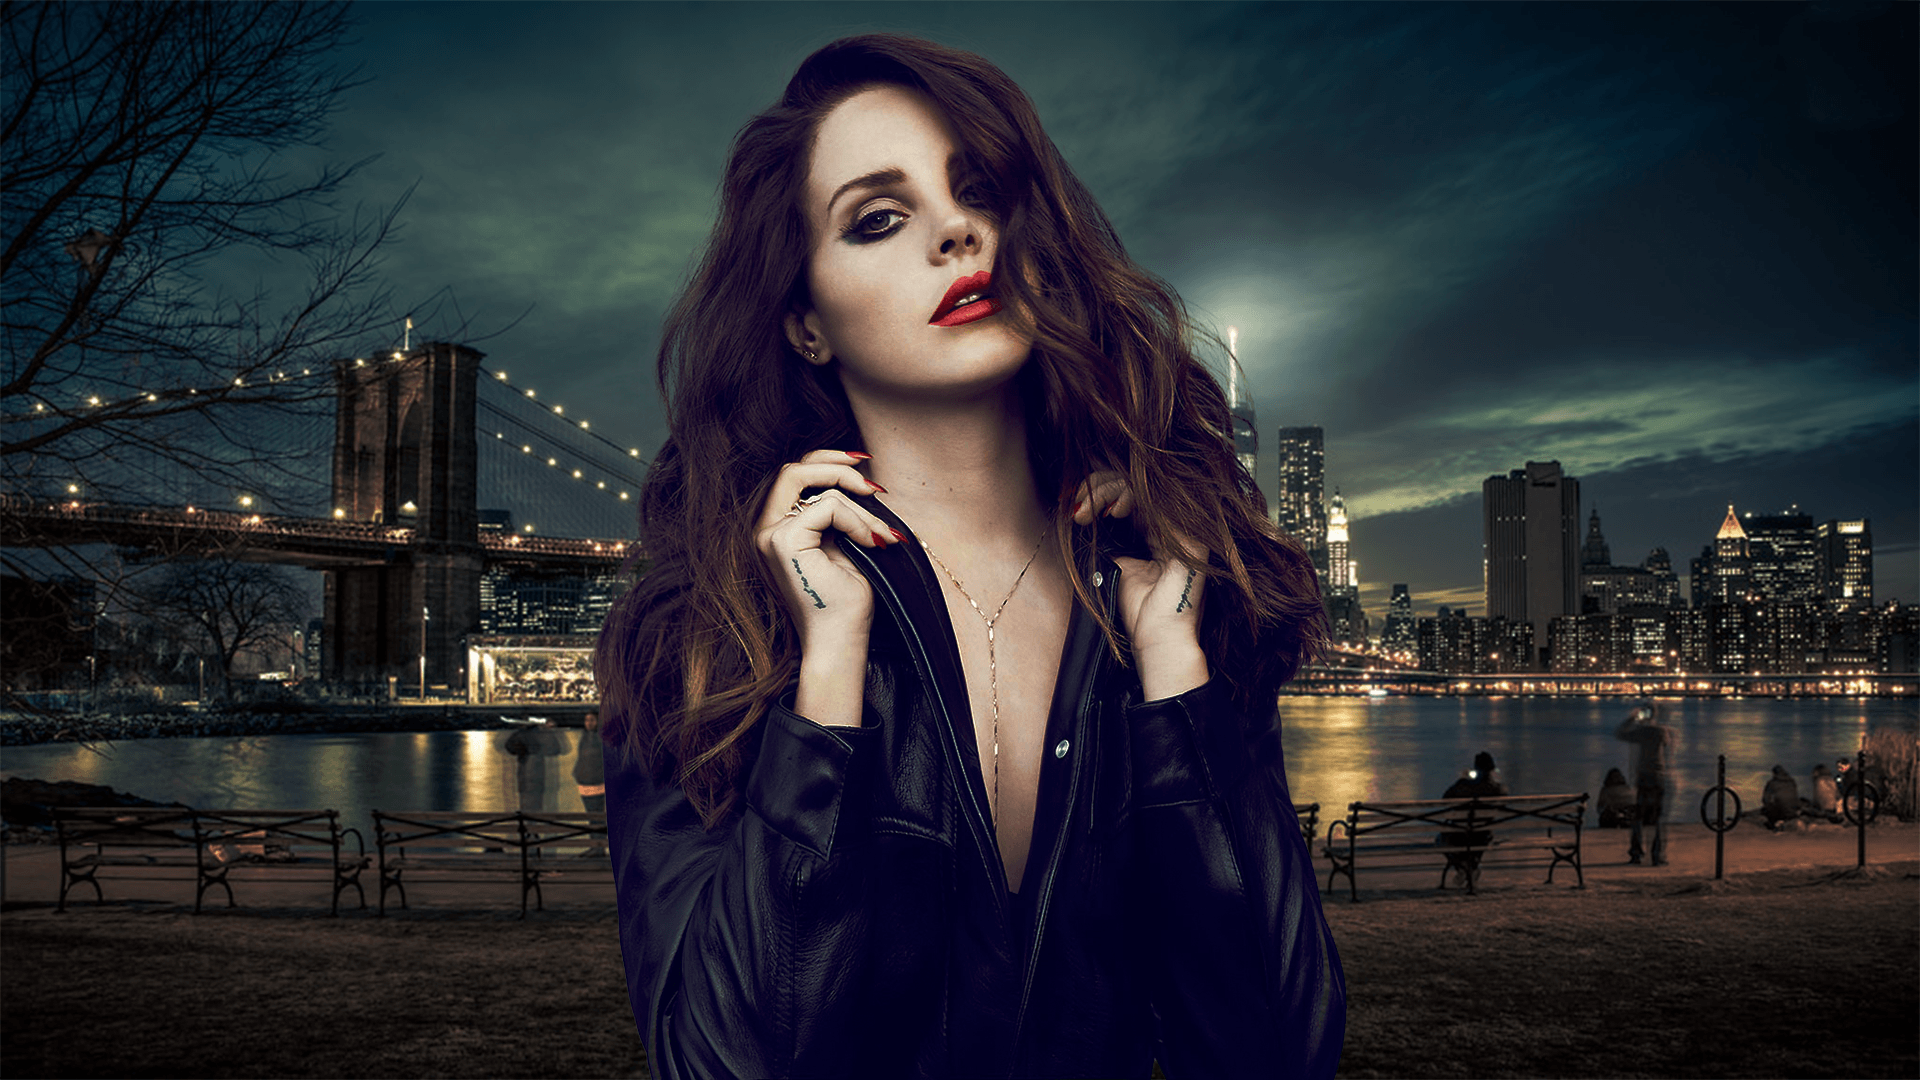 Lana Del Rey 2017 Wallpapers - Wallpaper Cave